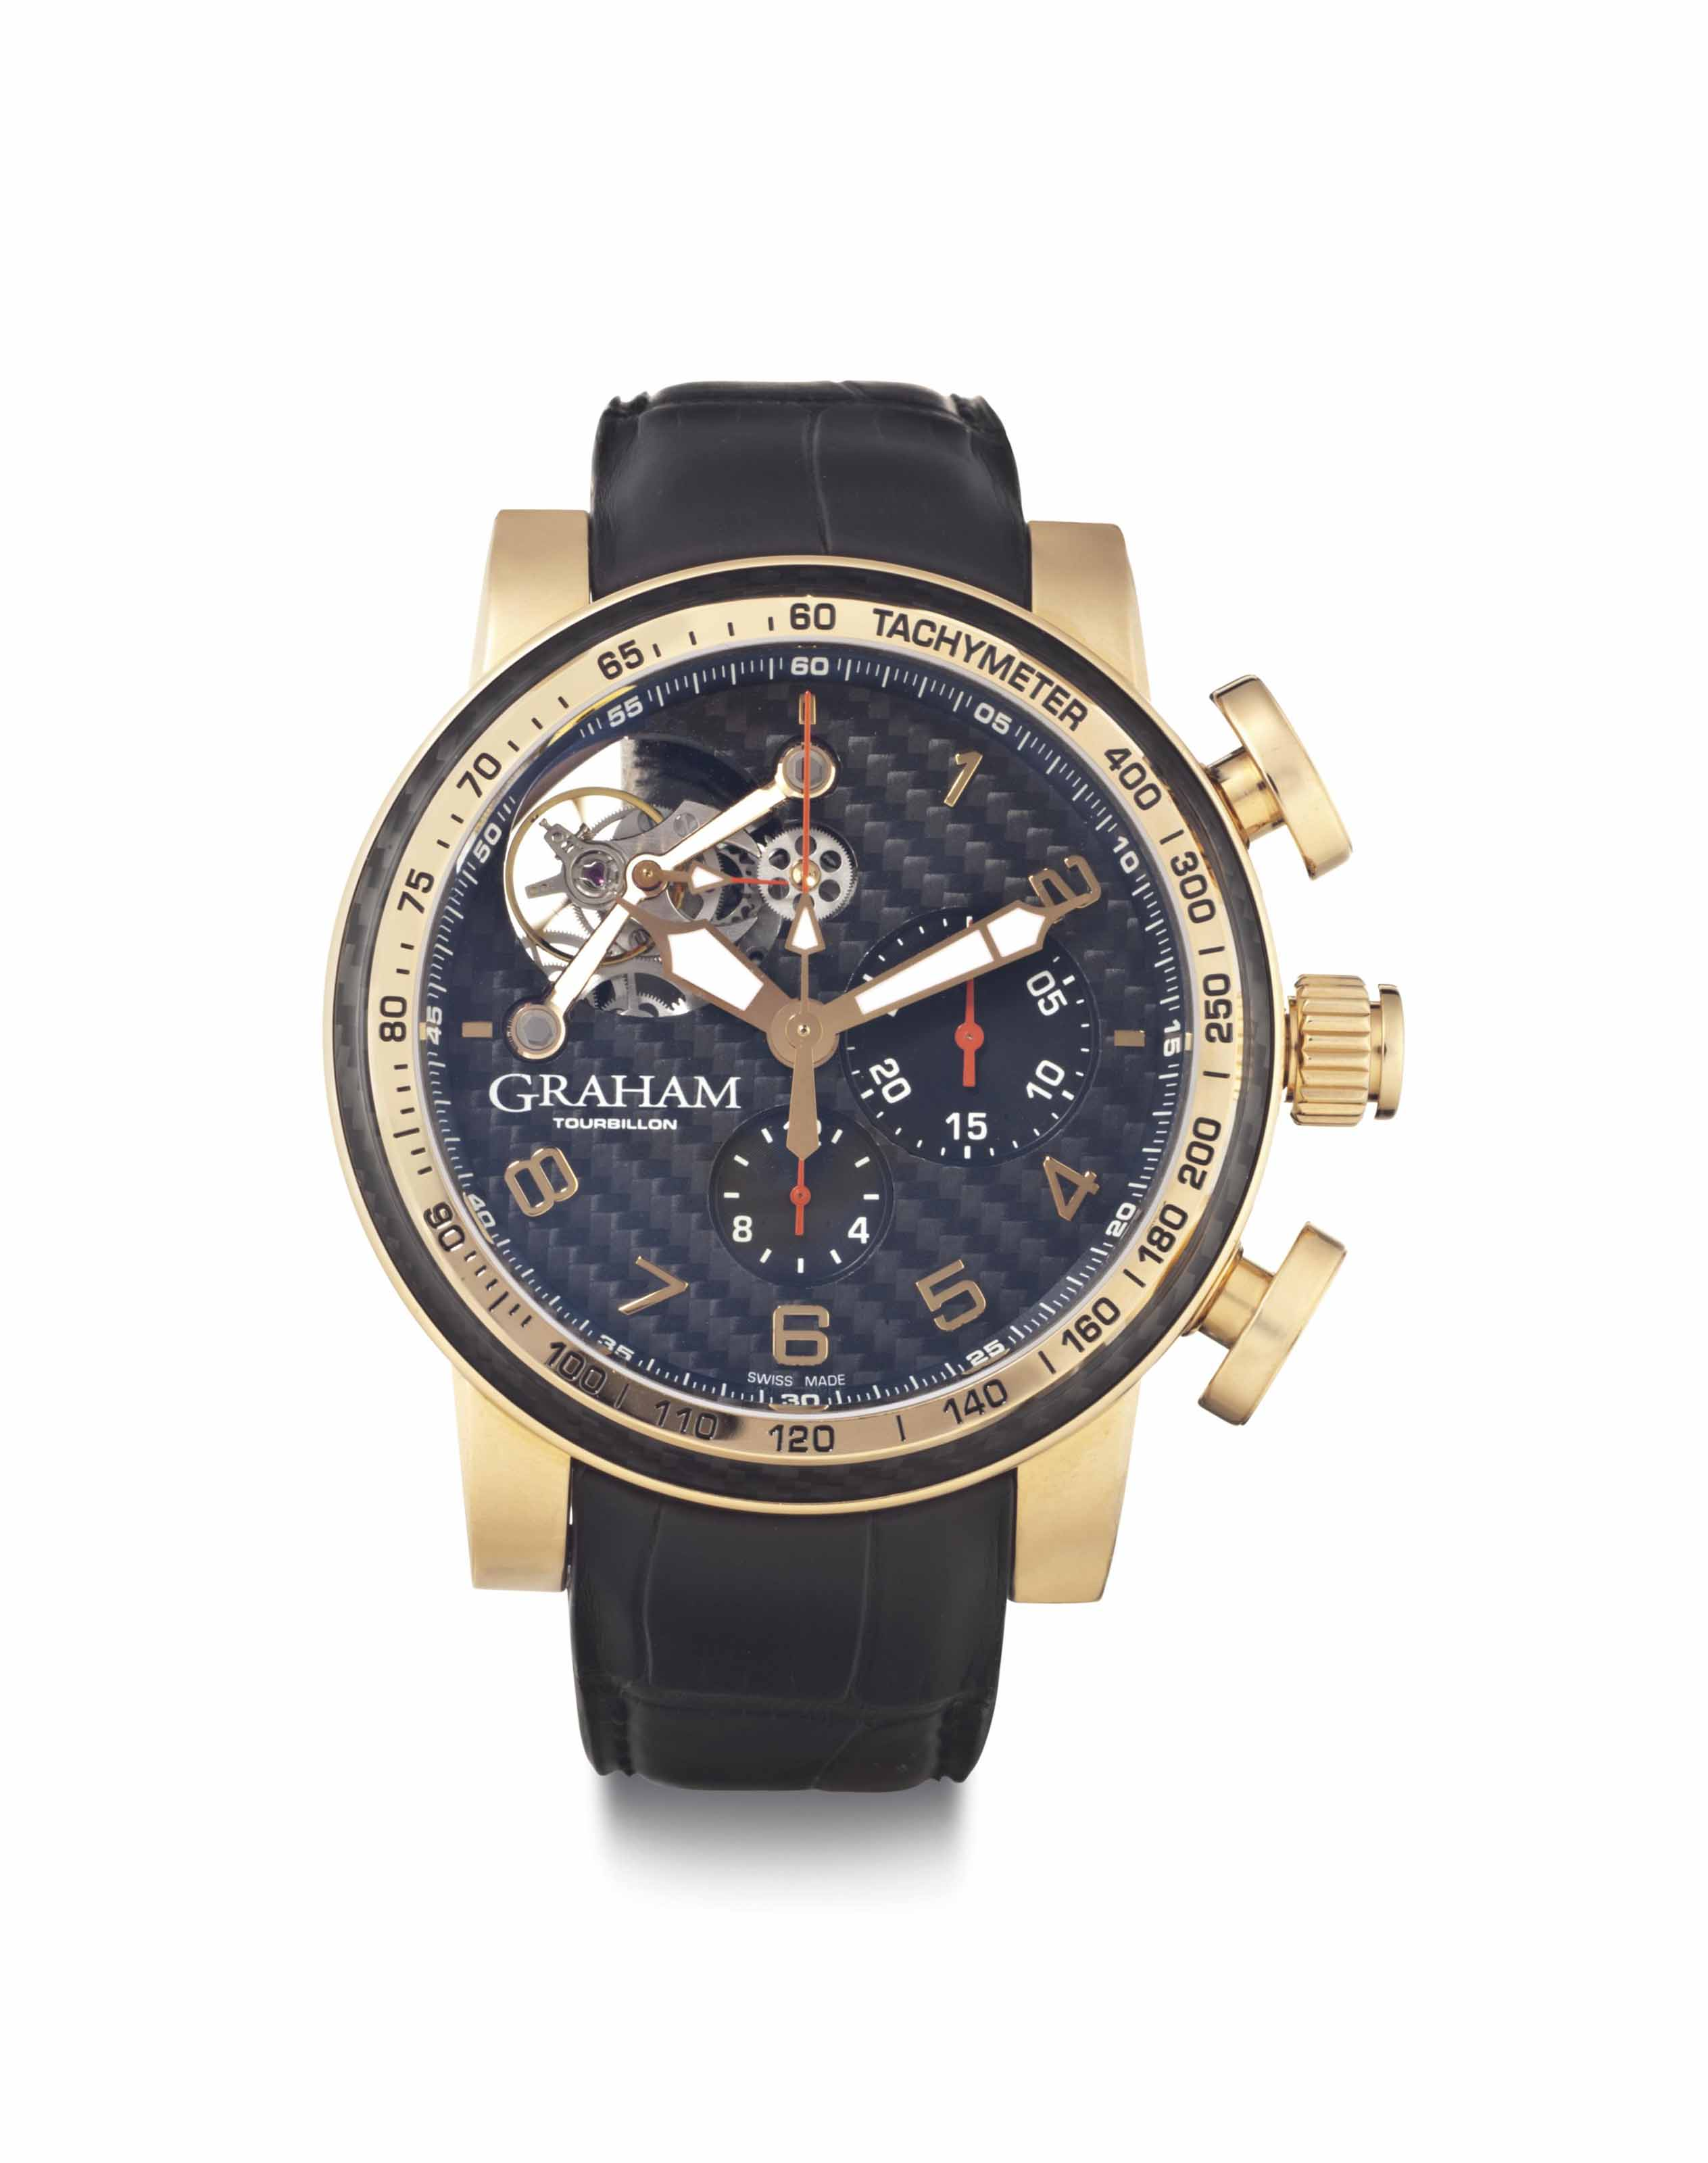 Graham. A Limited Edition 18k Pink Gold Automatic Chronograph Wristwatch with Tourbillon